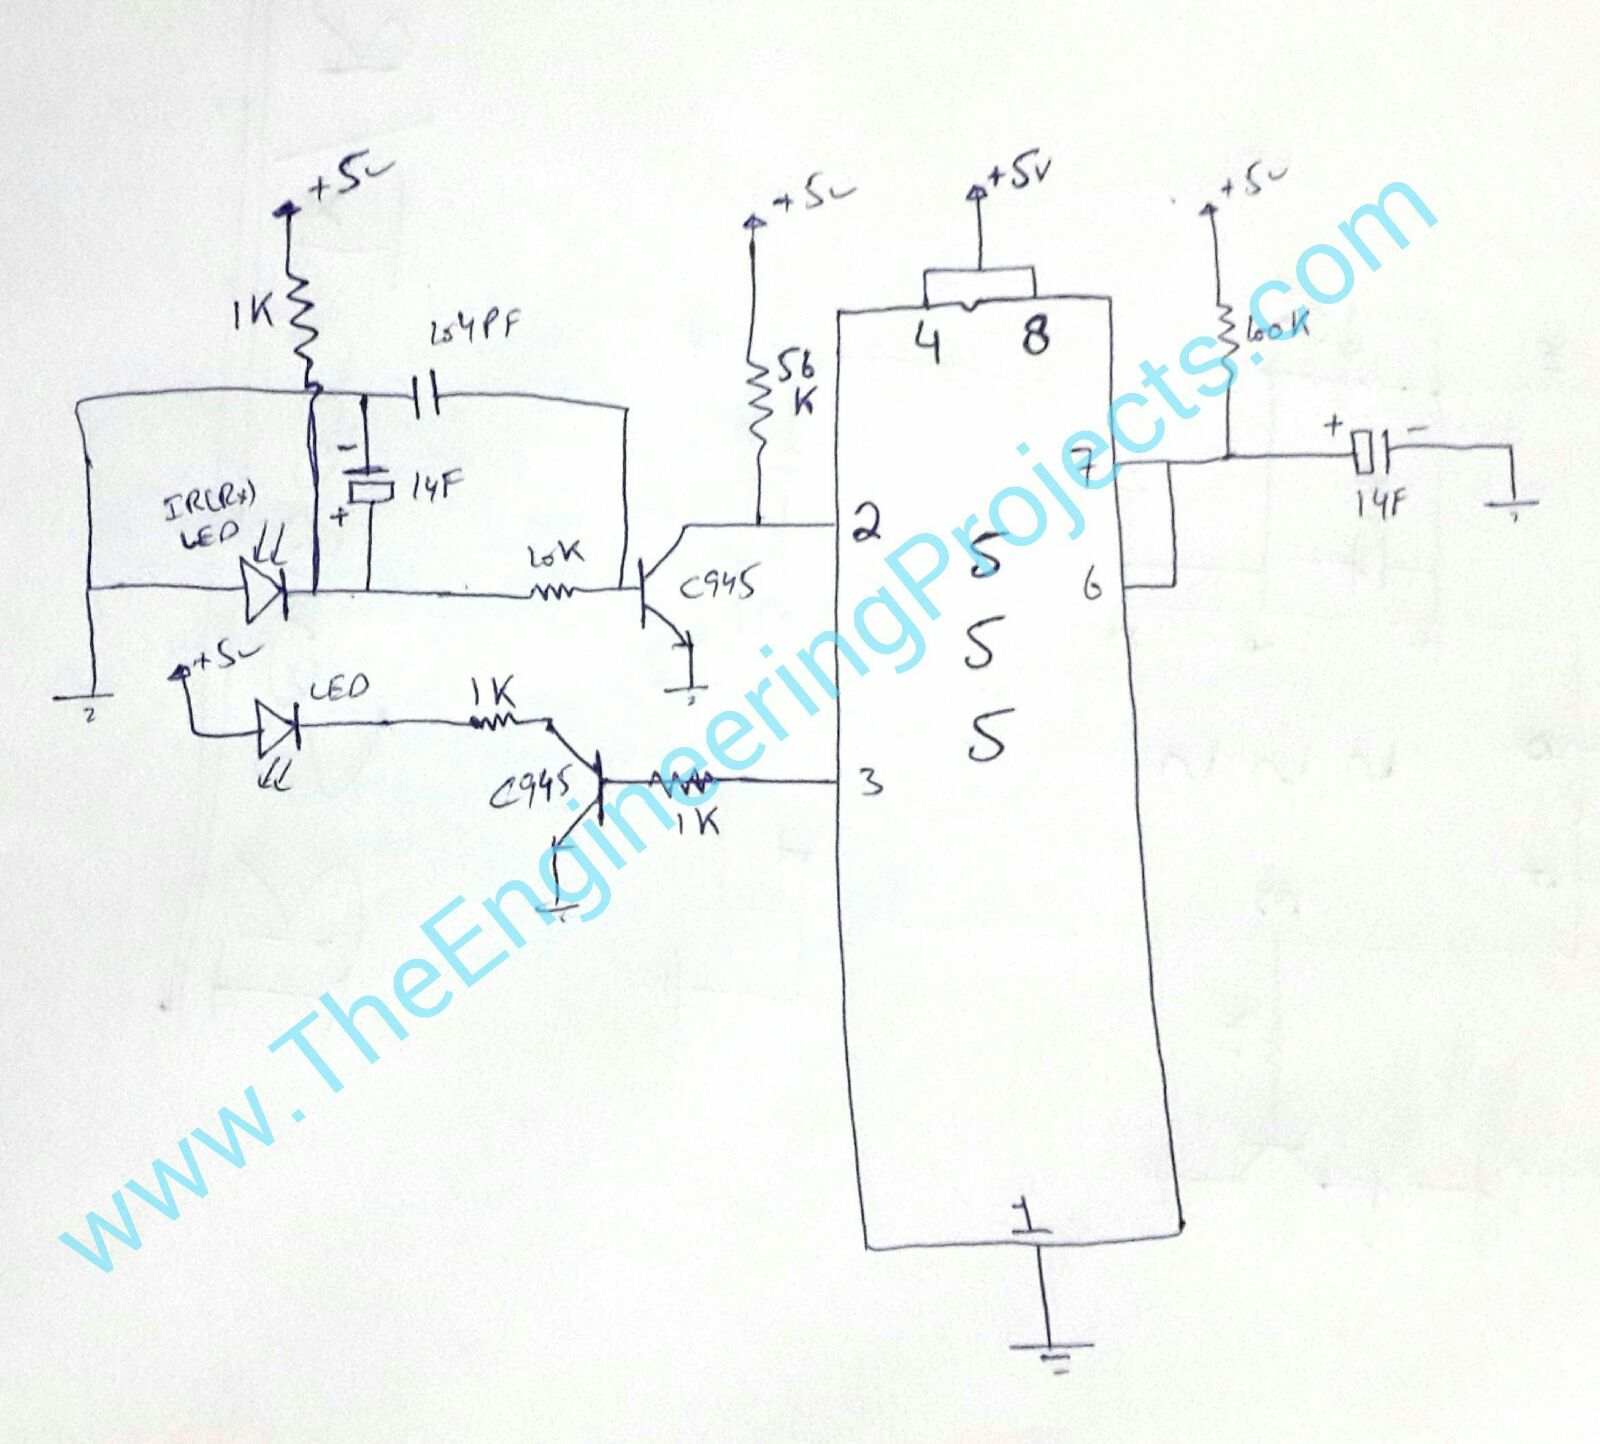 ir sensor design circuit diagram of ir sensor